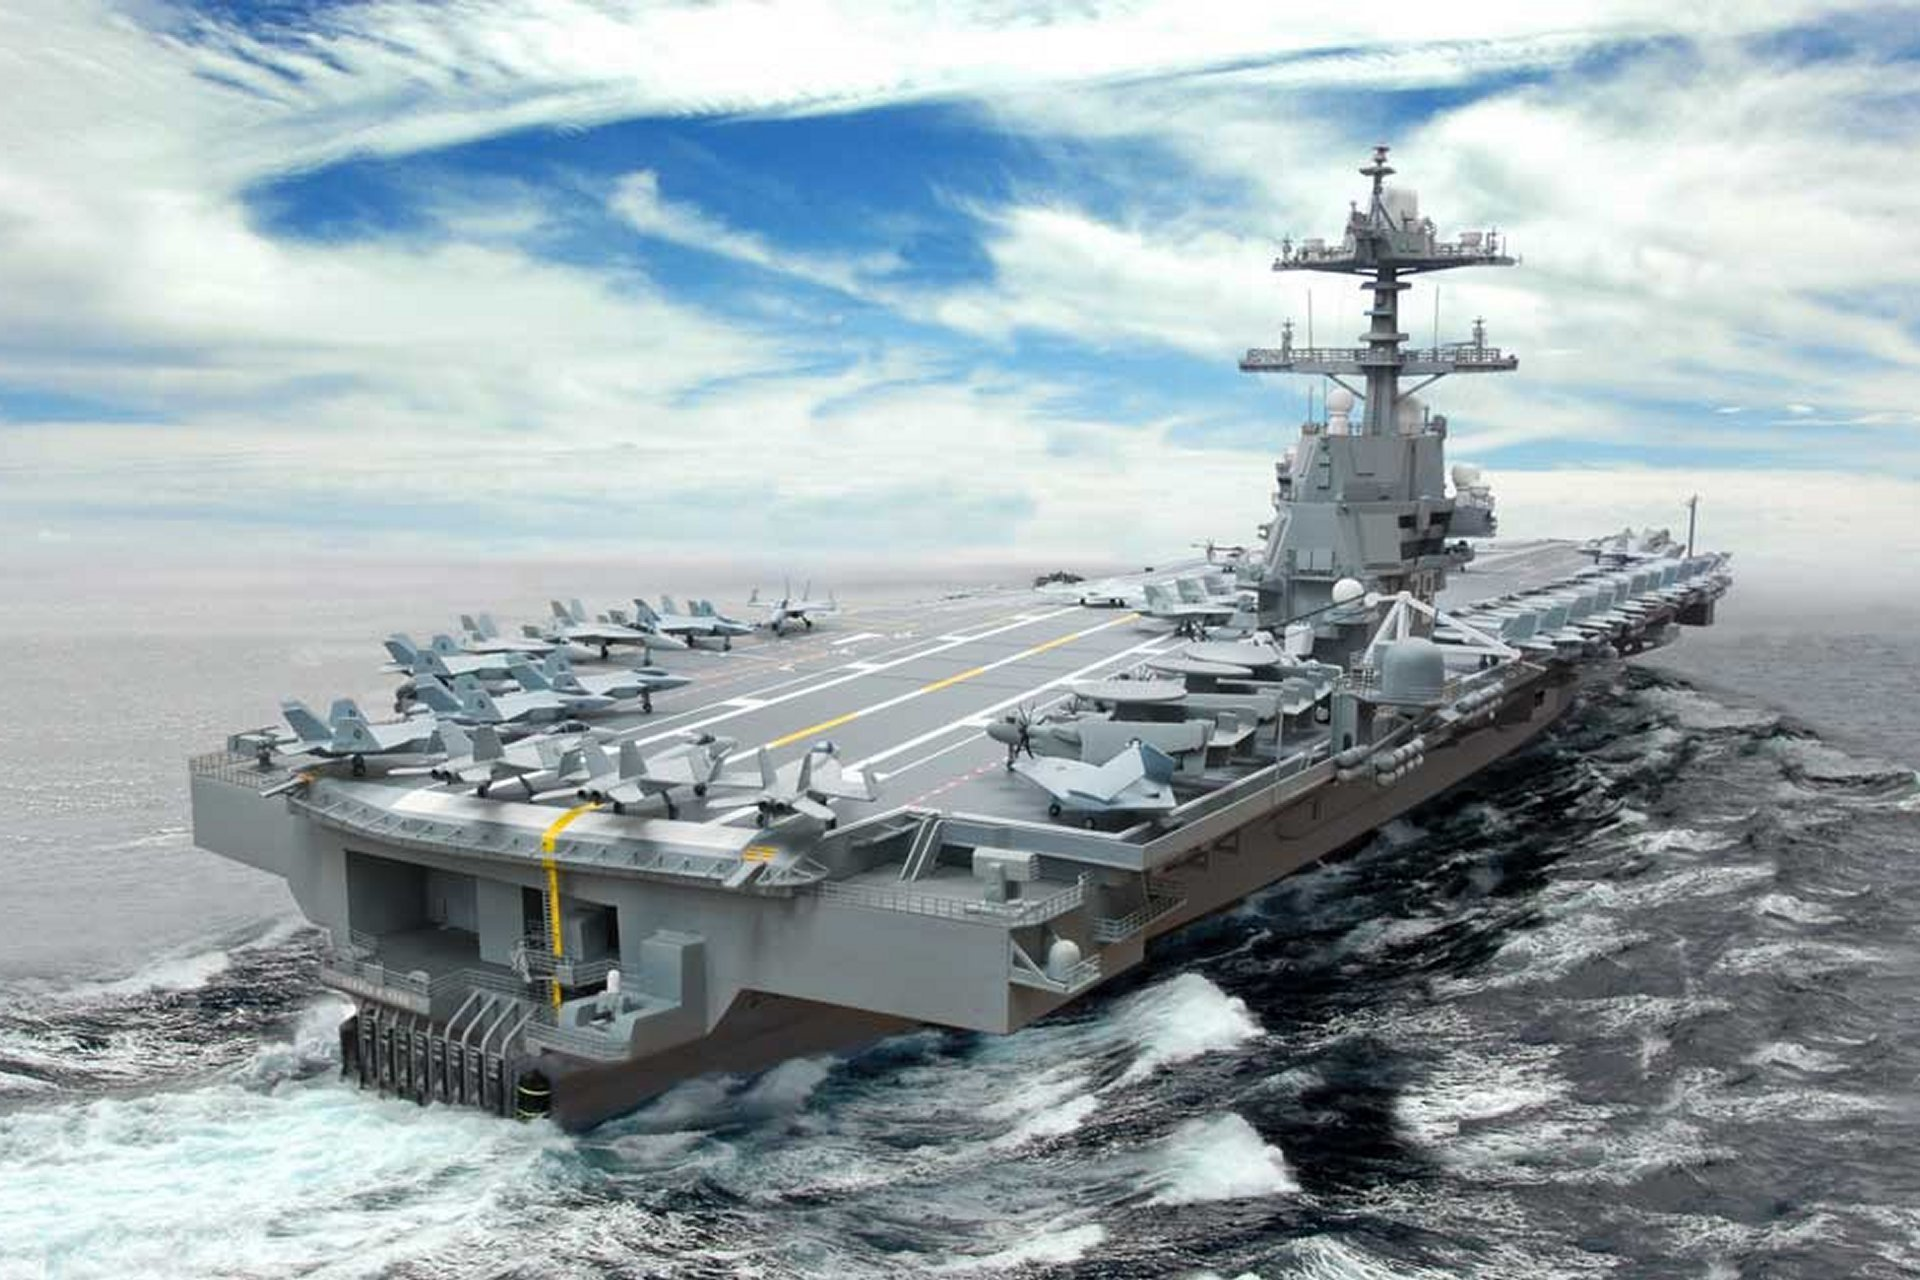 Captivating USS Gerald Ford Aircraft Carrier